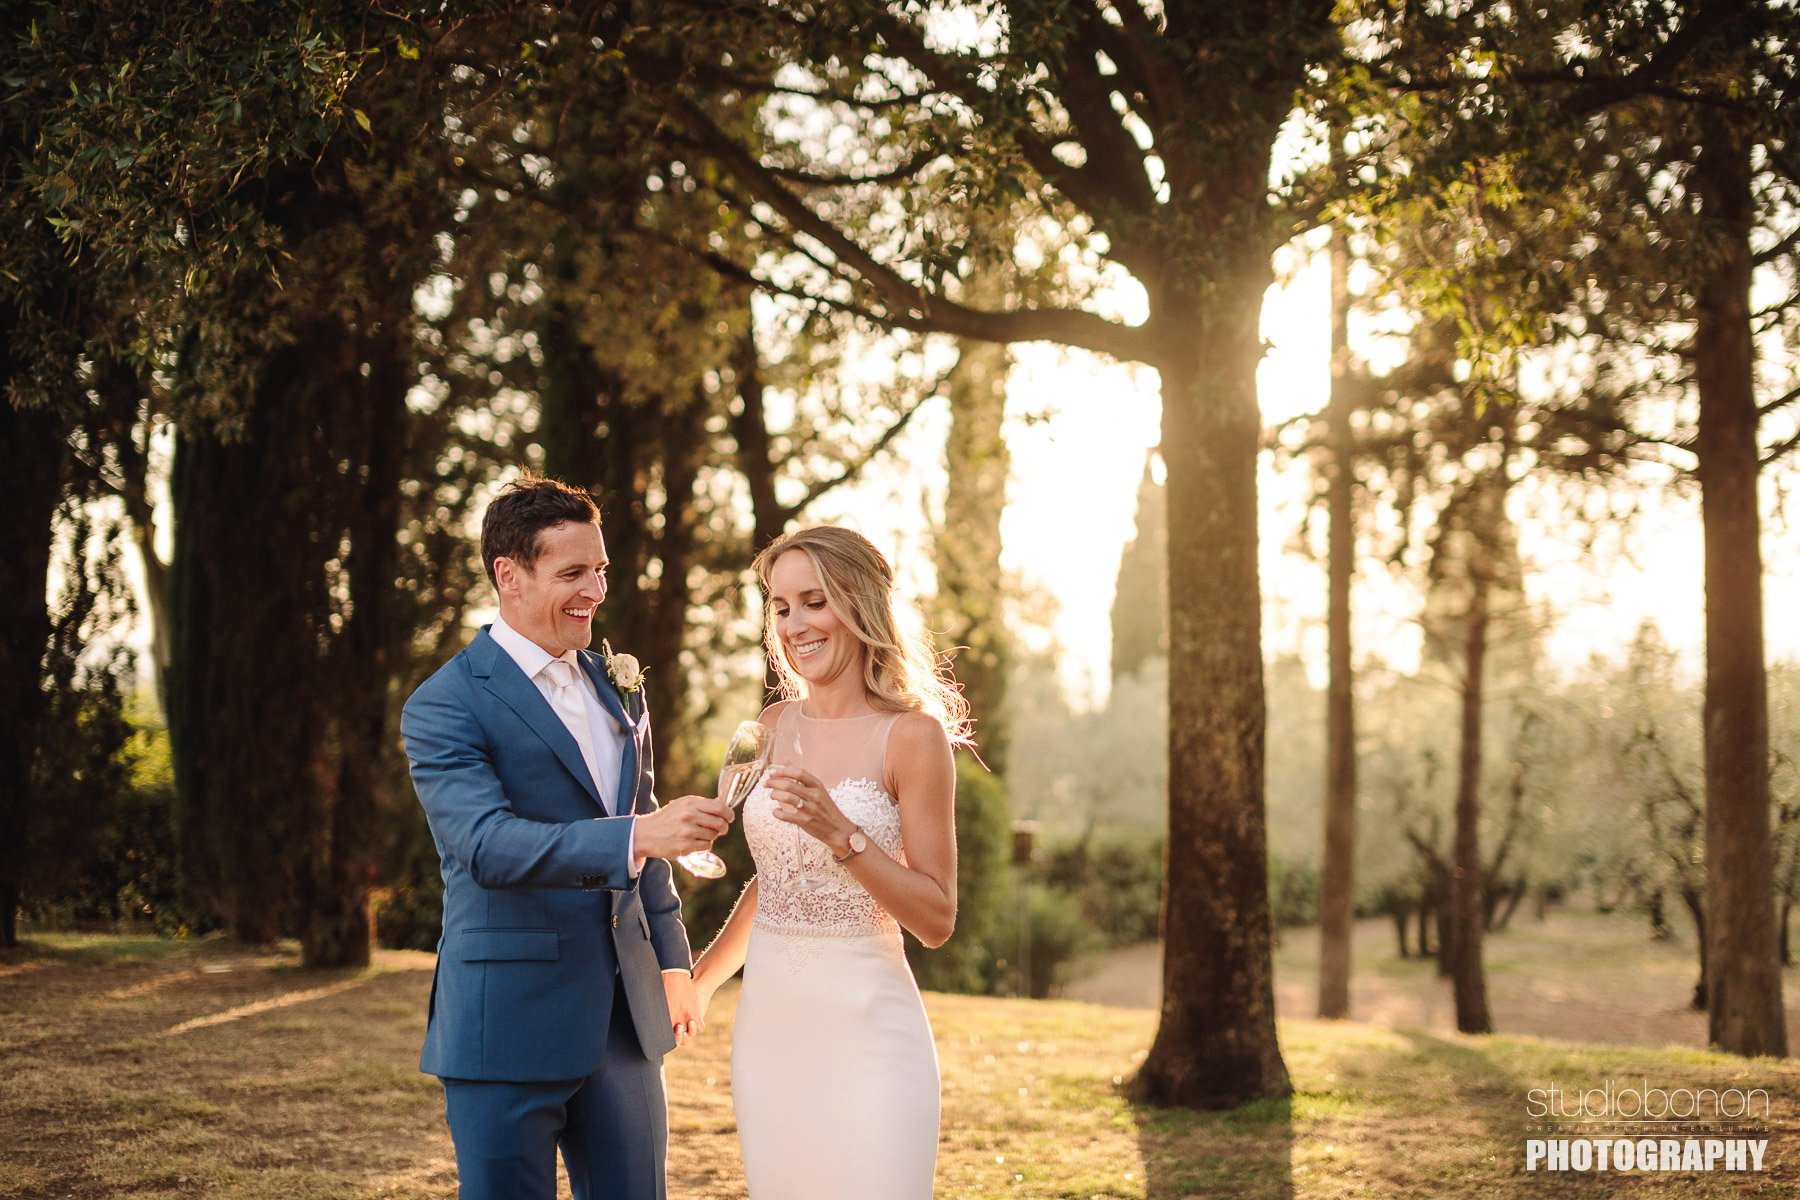 Golden hour wedding photo with bride and groom at Villa Pisignano in Chianti